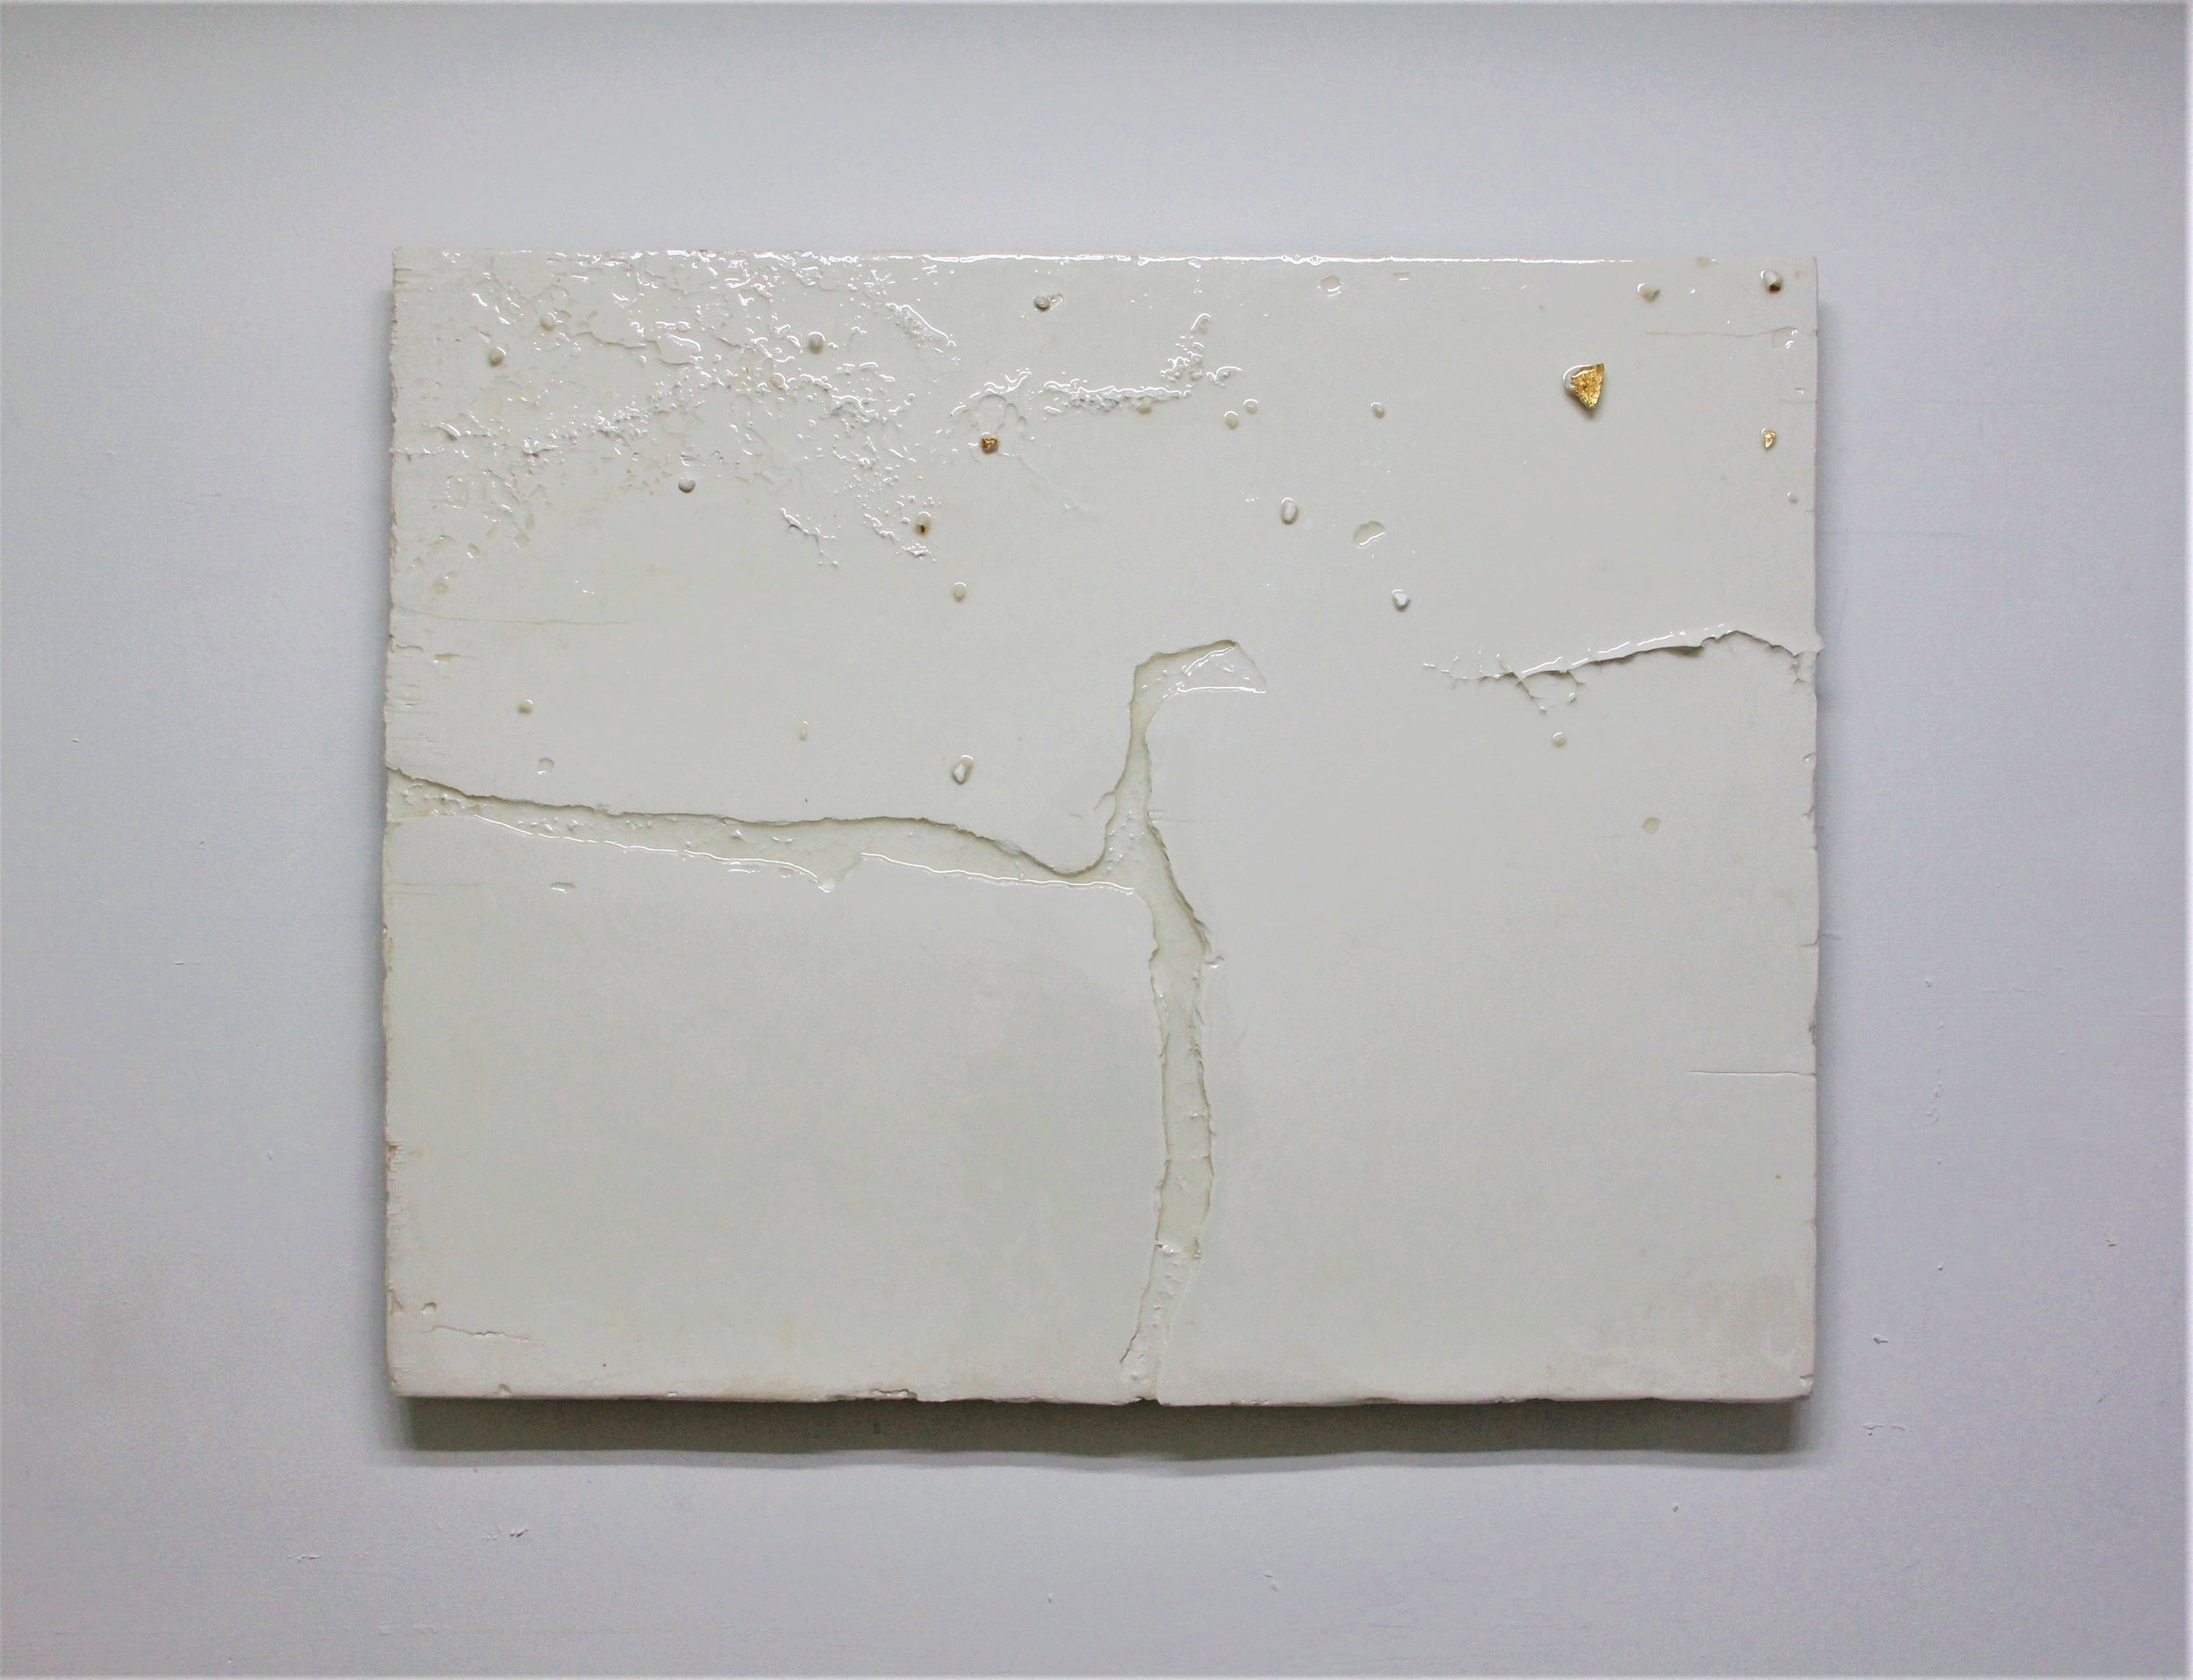 Appendix 5, 2019, Resinated Gypsum Plaster and Gold Leaf on Wood, 68 x 84 cm.jpg